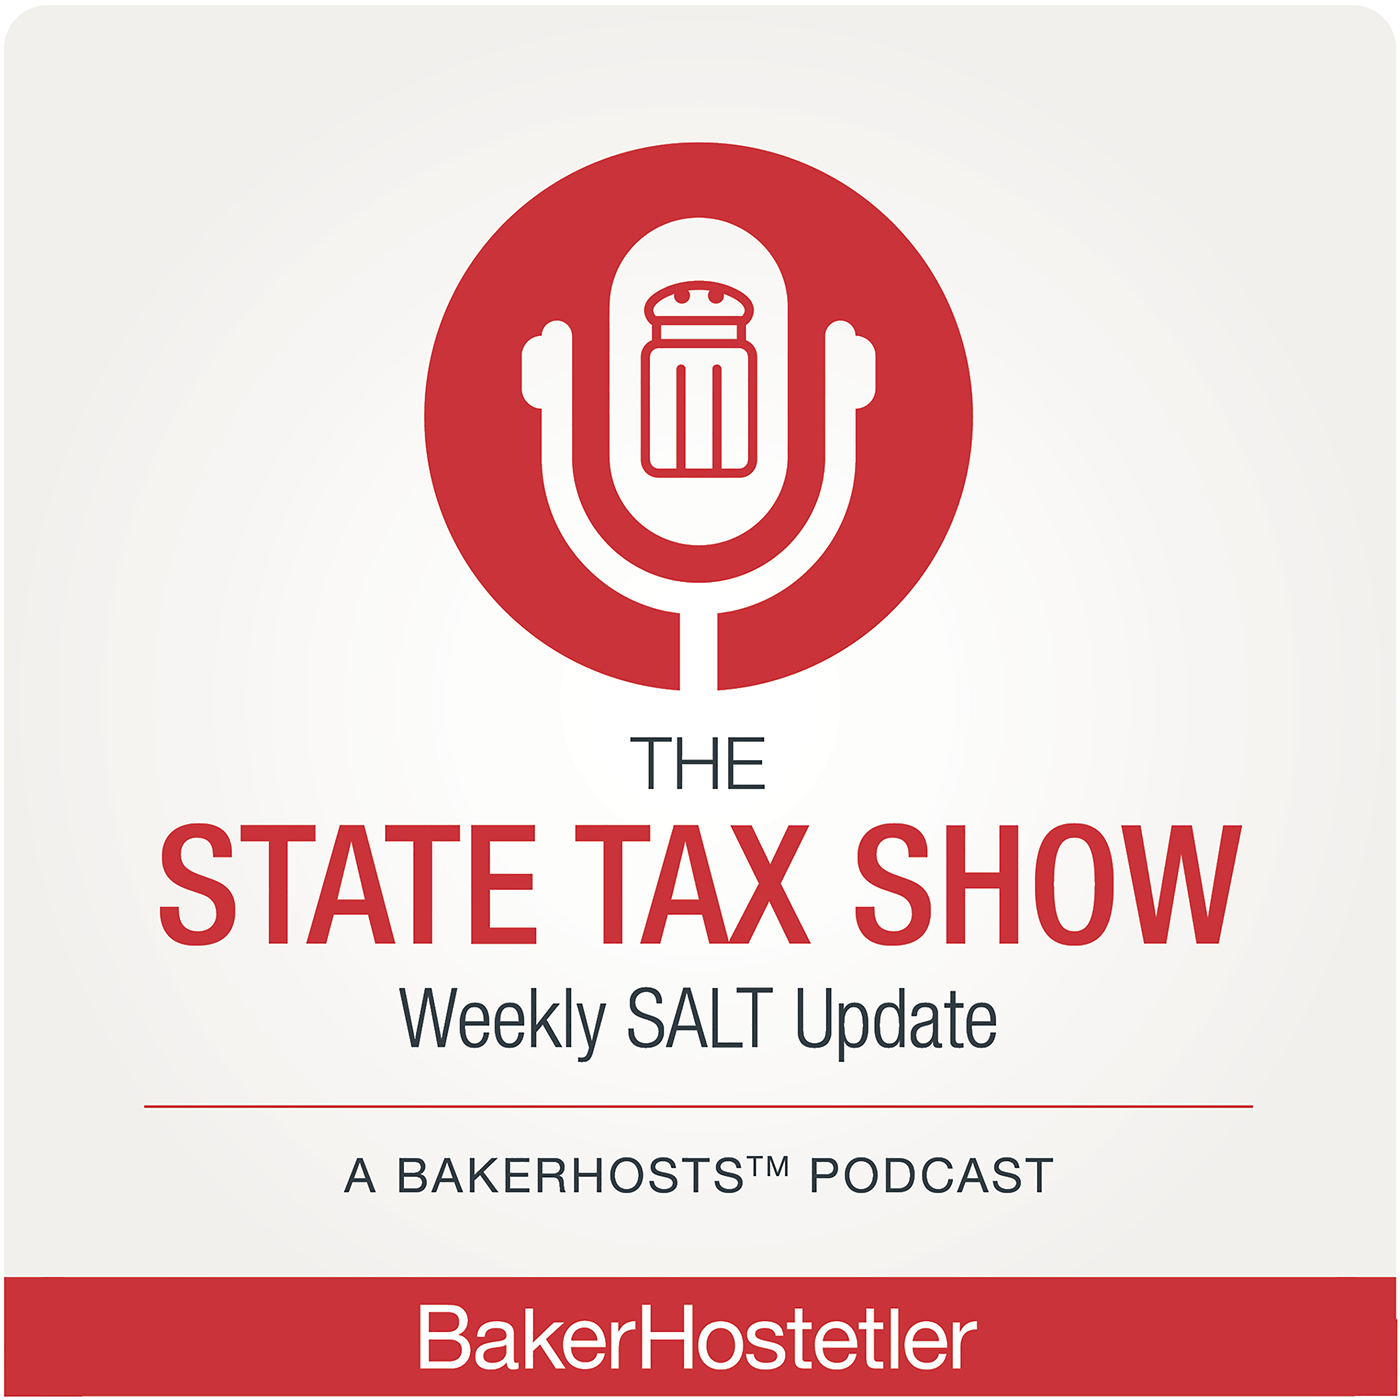 Show artwork for The State Tax Show